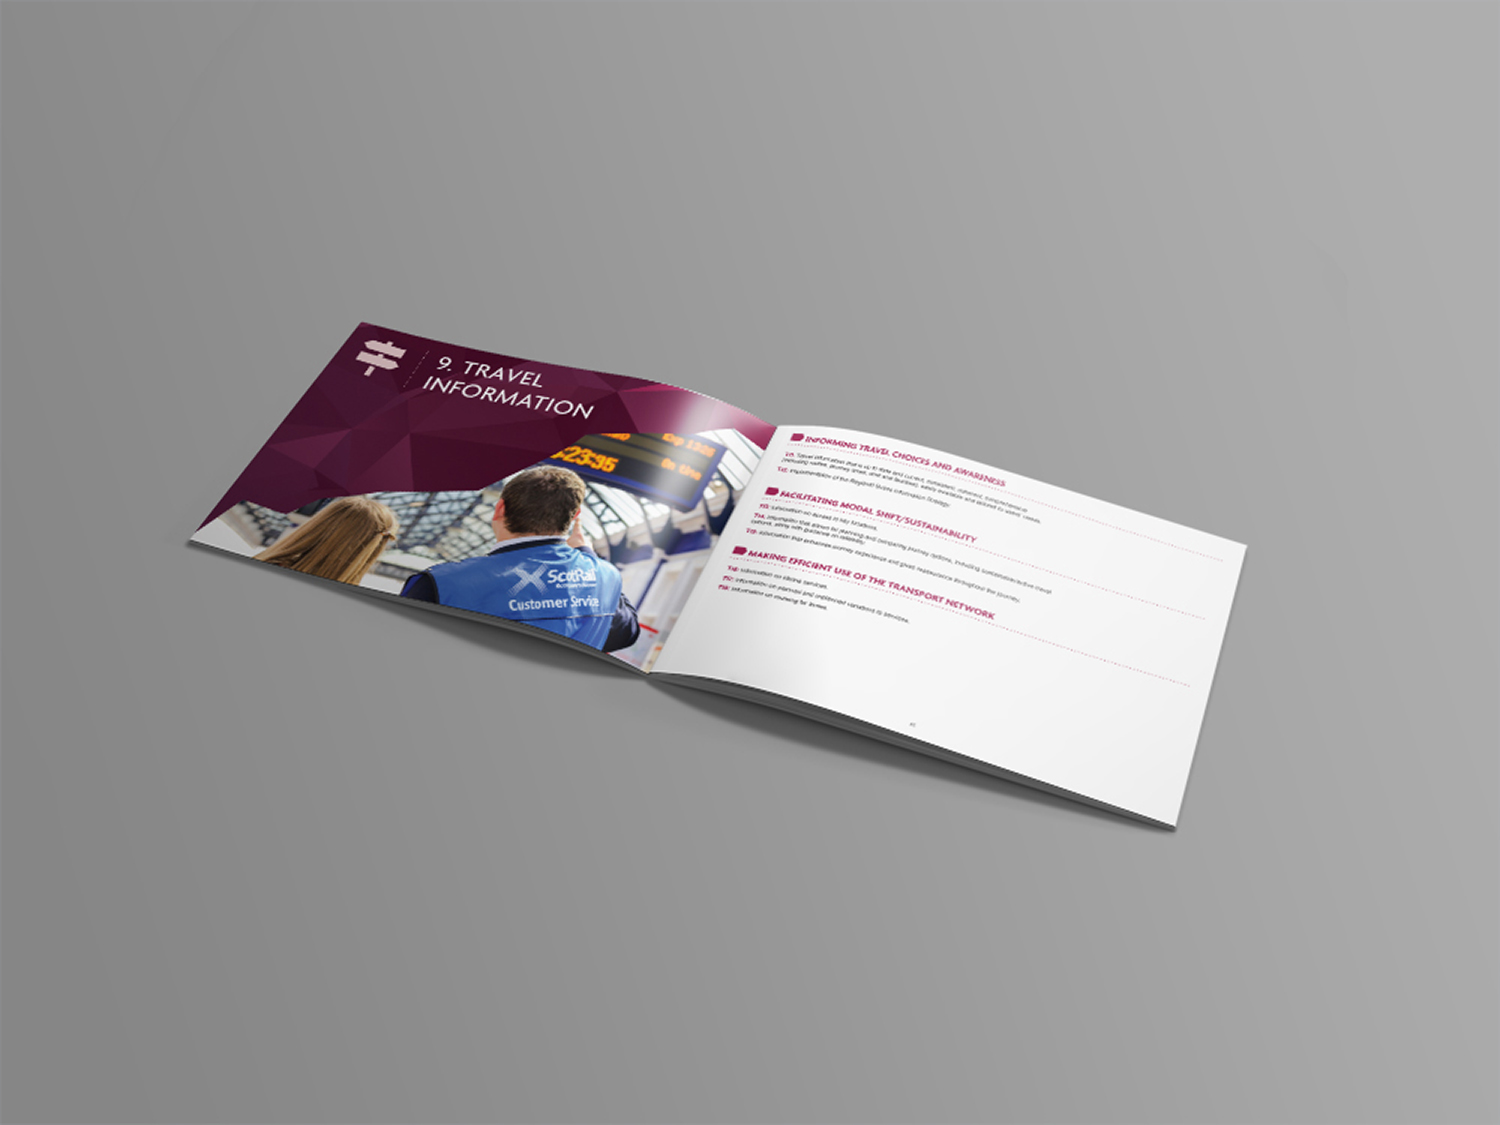 Recently we have used the 2015-16 Annual report to further update the identity we designed for Tactran's publications.